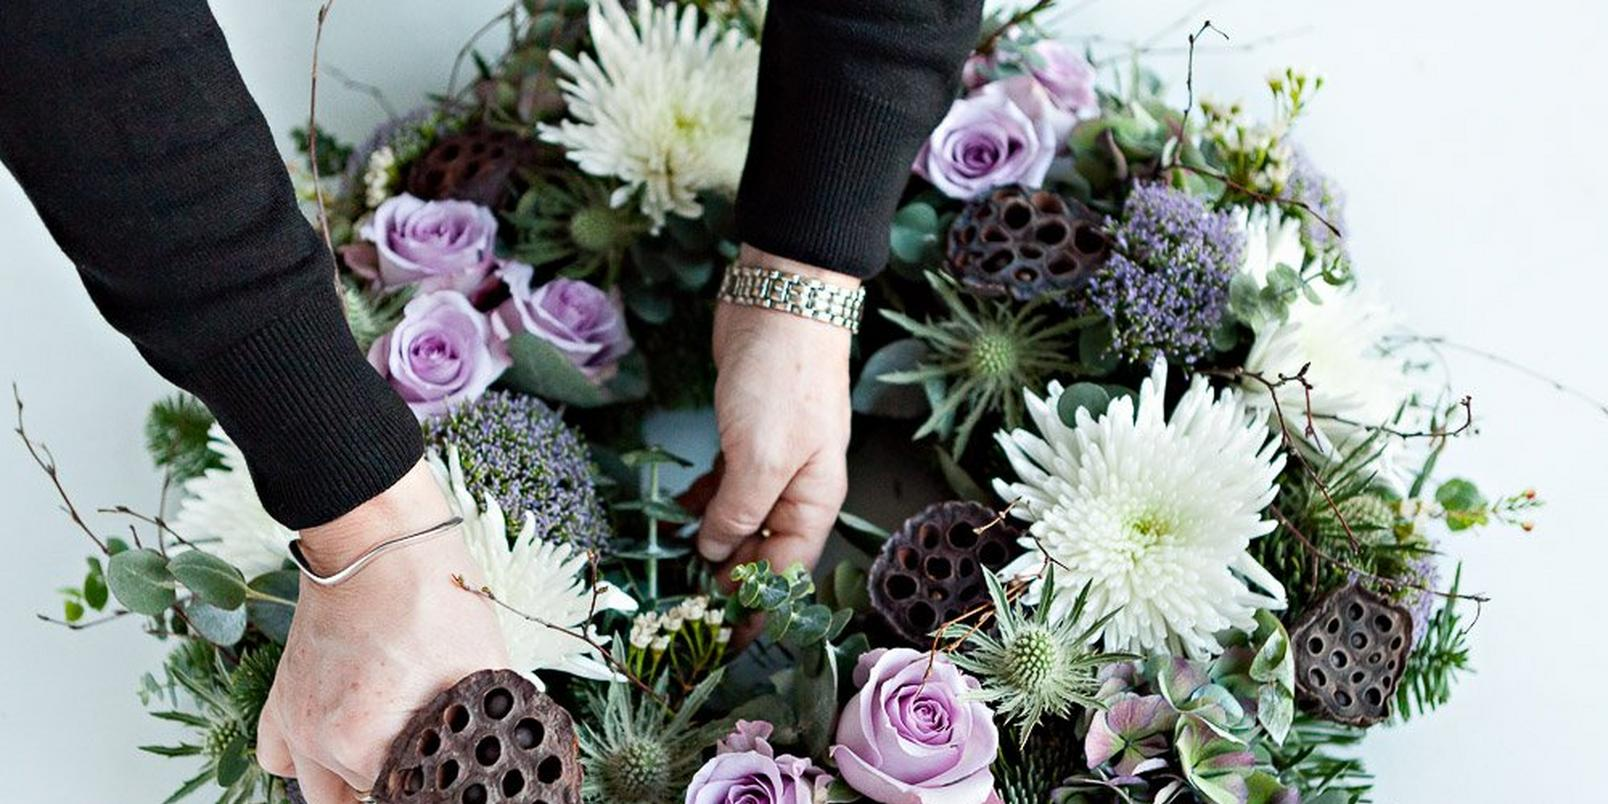 How-to-make-a-real-flower-Christmas-wreath-8